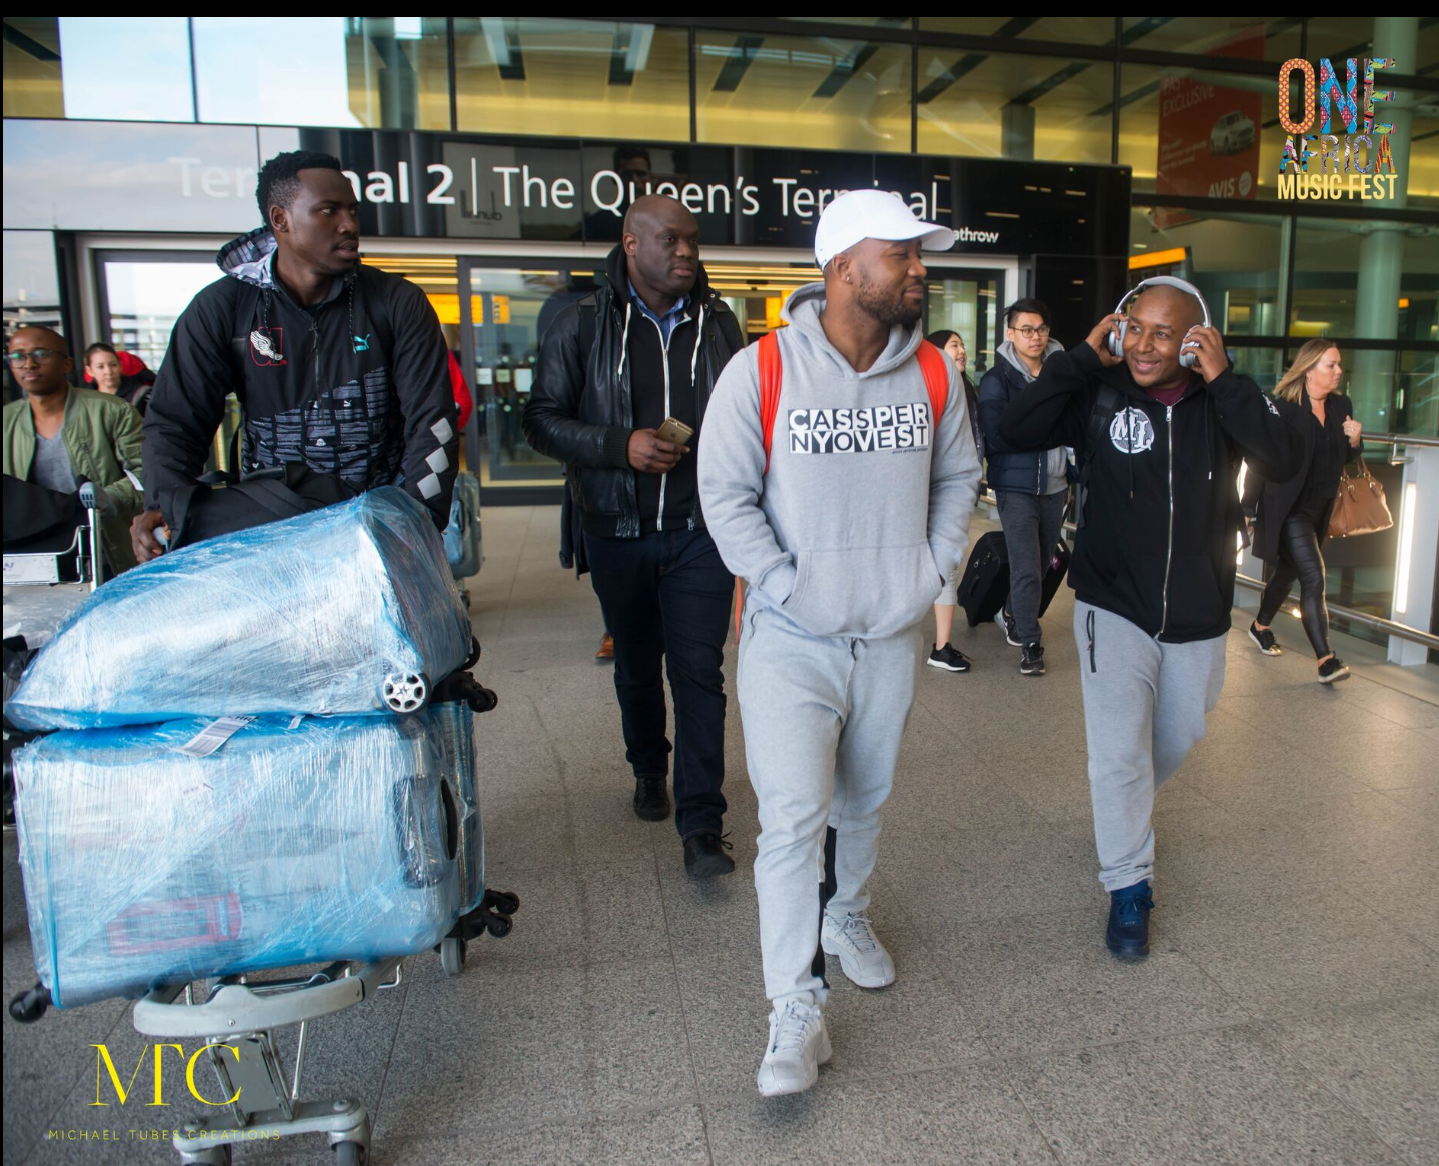 Photos: Cassper Nyovest, Sarkodie,Victoria Kimani, Banky W & More Arrive In London For The 2017 One Africa Music Fest